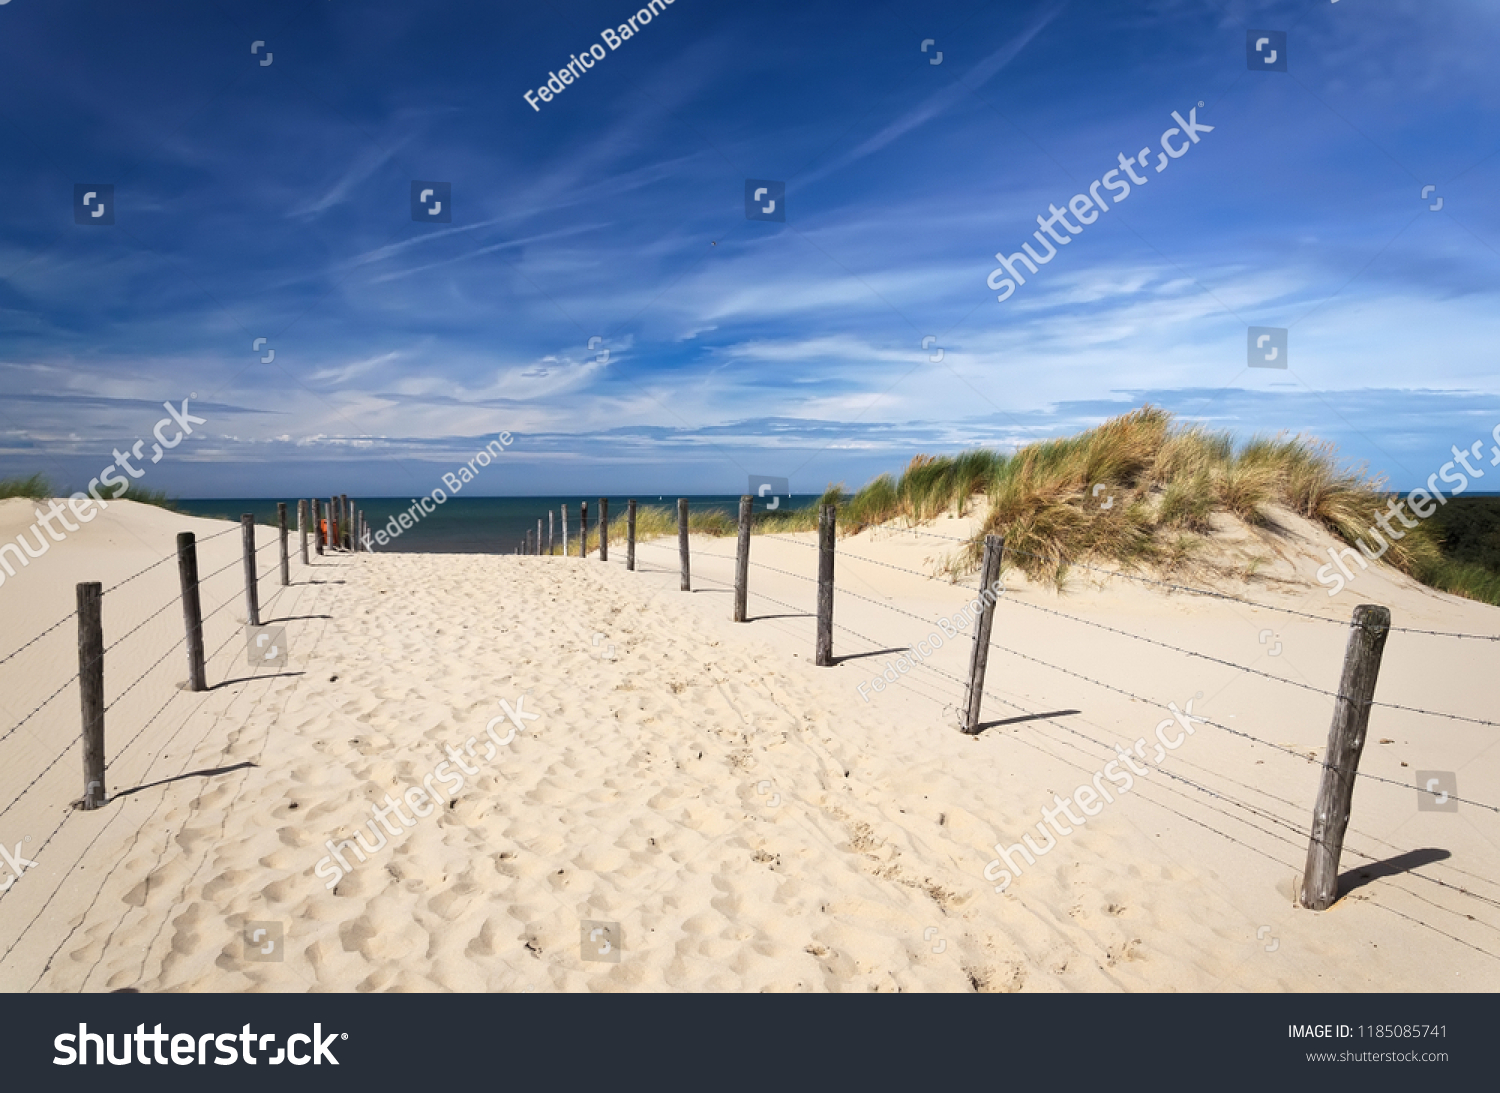 stock-photo-beach-and-blue-sky-wonderful